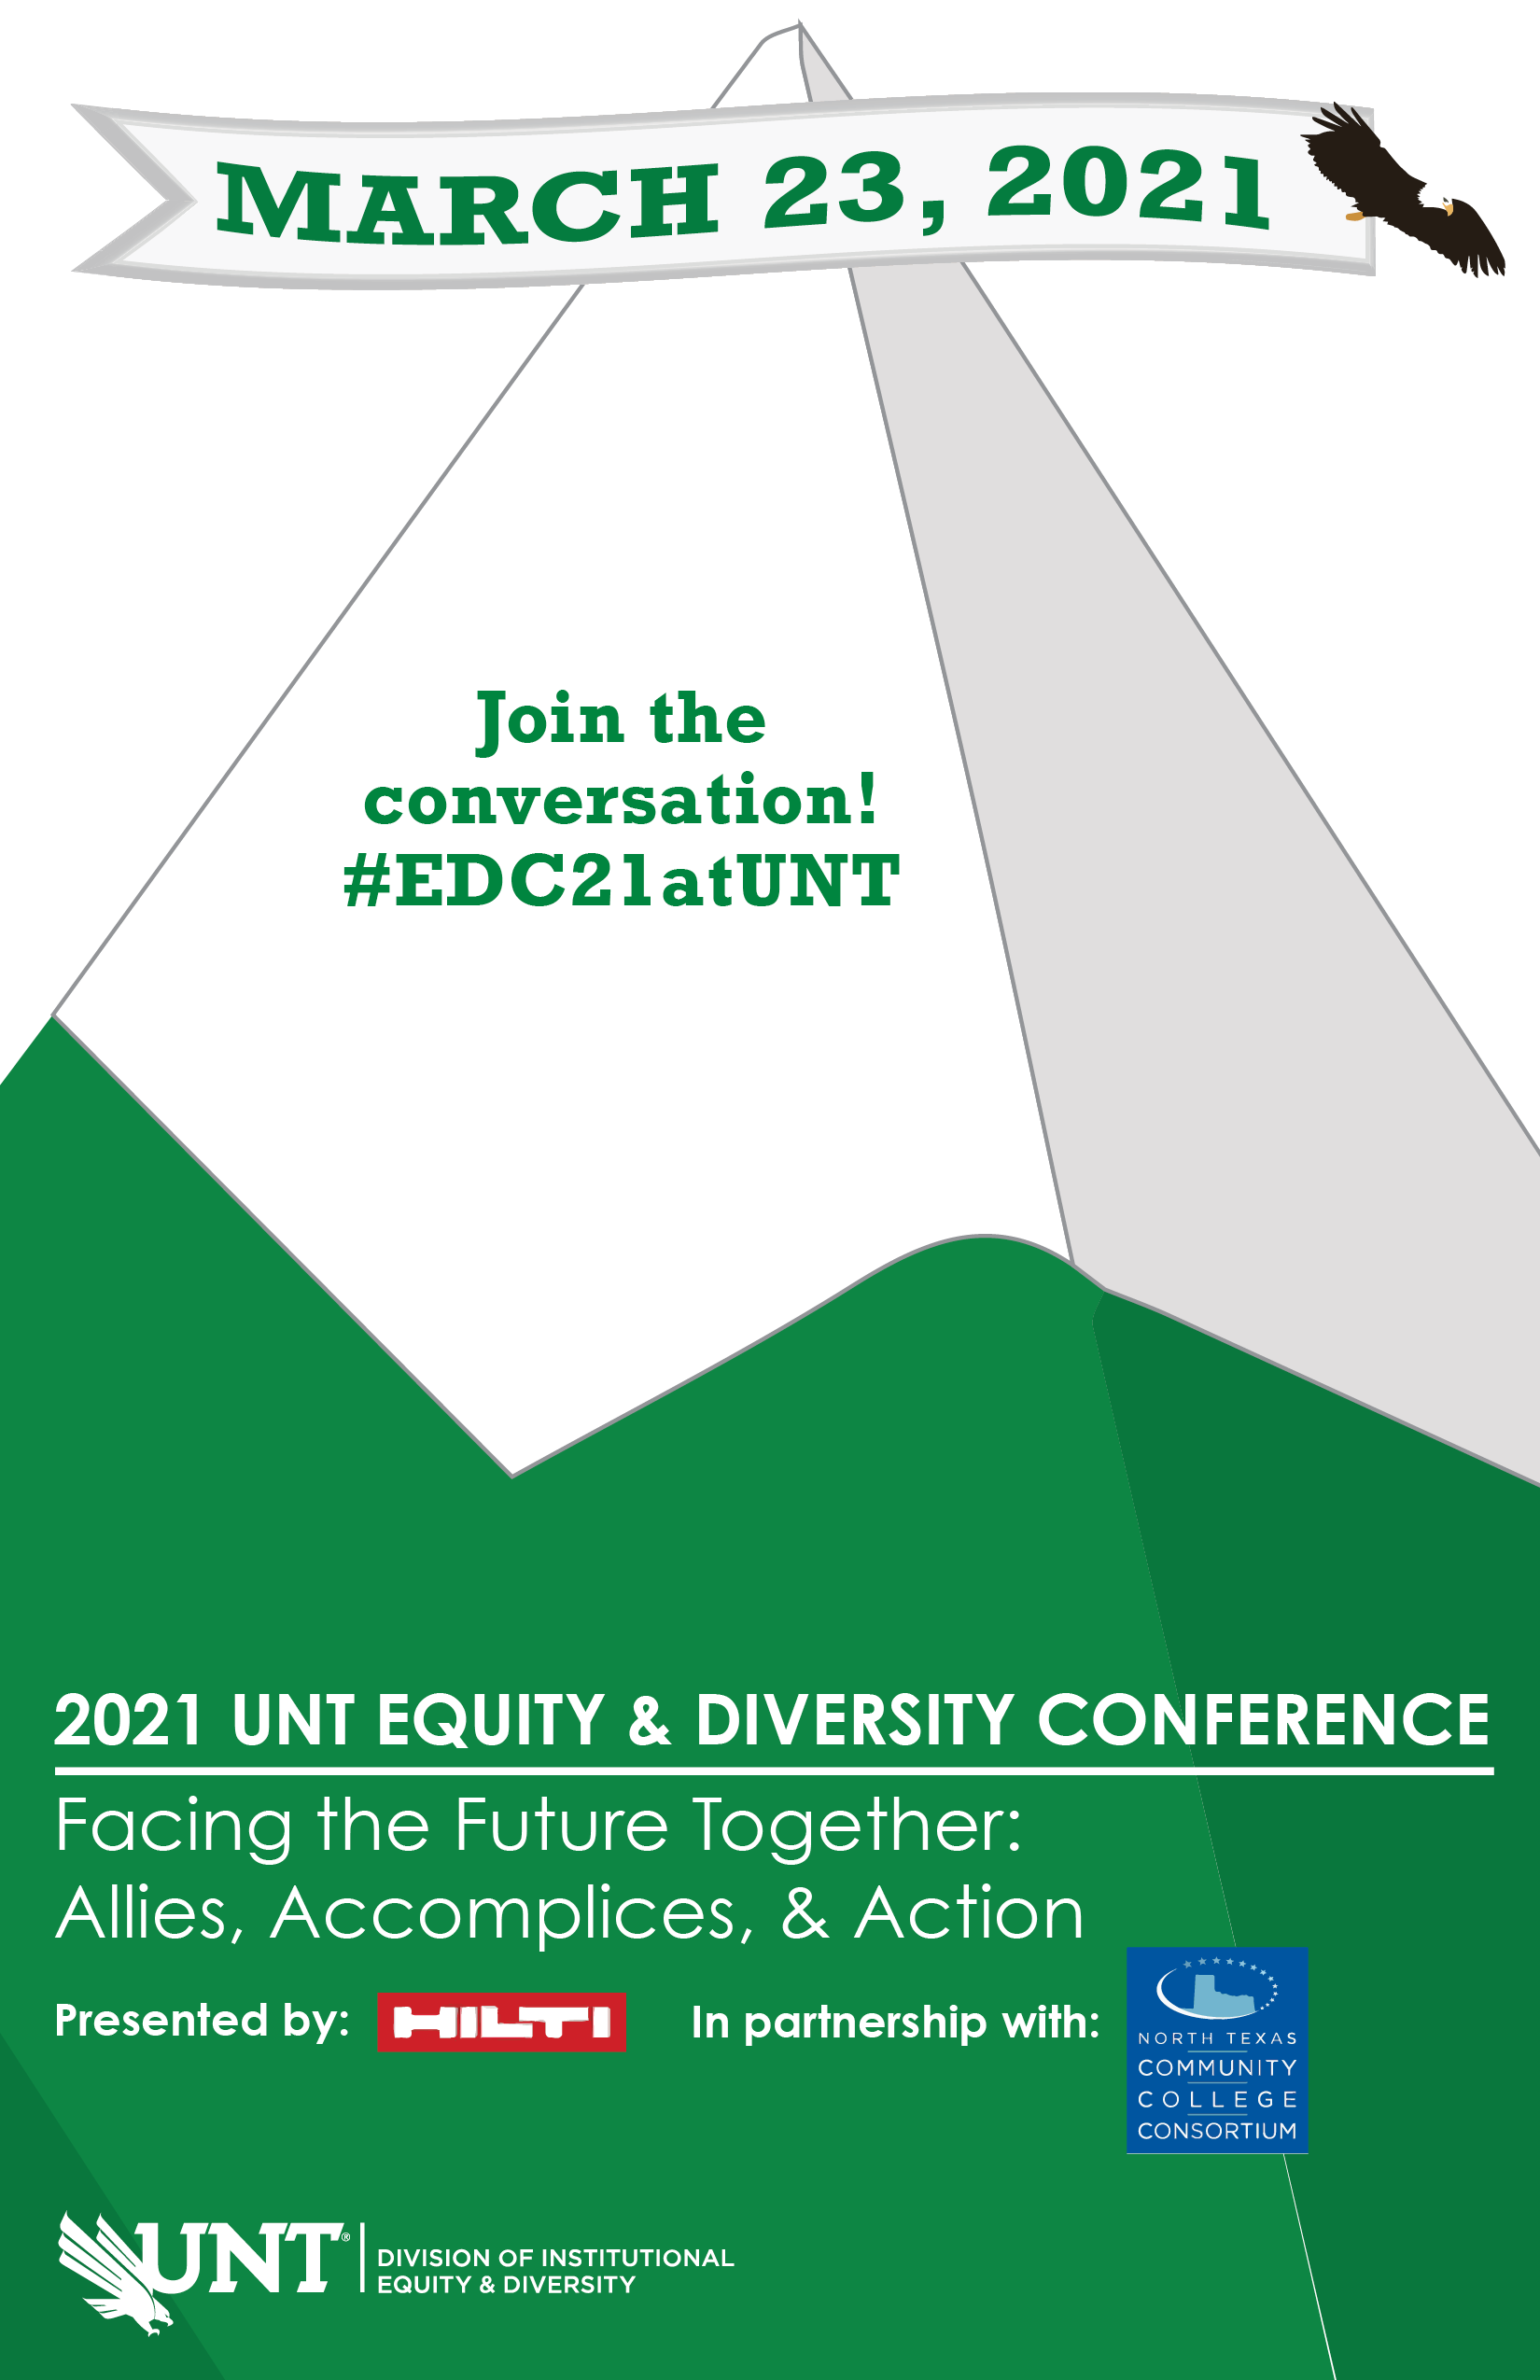 Green and white capped mountain peak with text reading: 2021 Equity & Diversity Conference Presented by Hilti. Join the conversation #EDC21atUNT. Banner across mountain peak has the date of the conference: March 23, 2021.